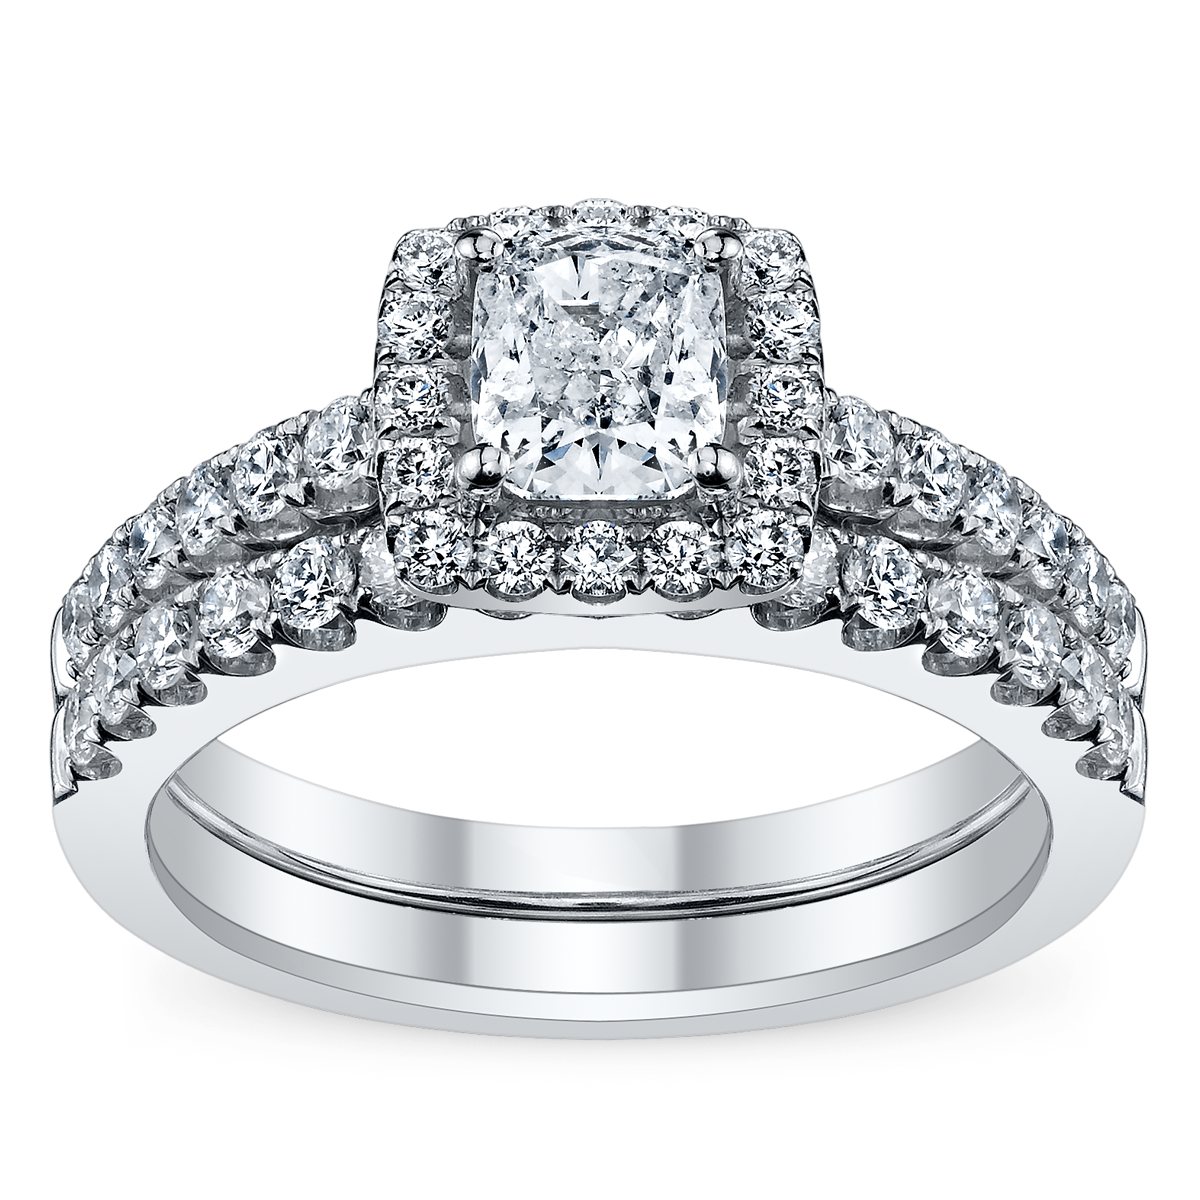 Candlelight Engagement & Wedding Ring Set from www.RobbinsBrothers.com